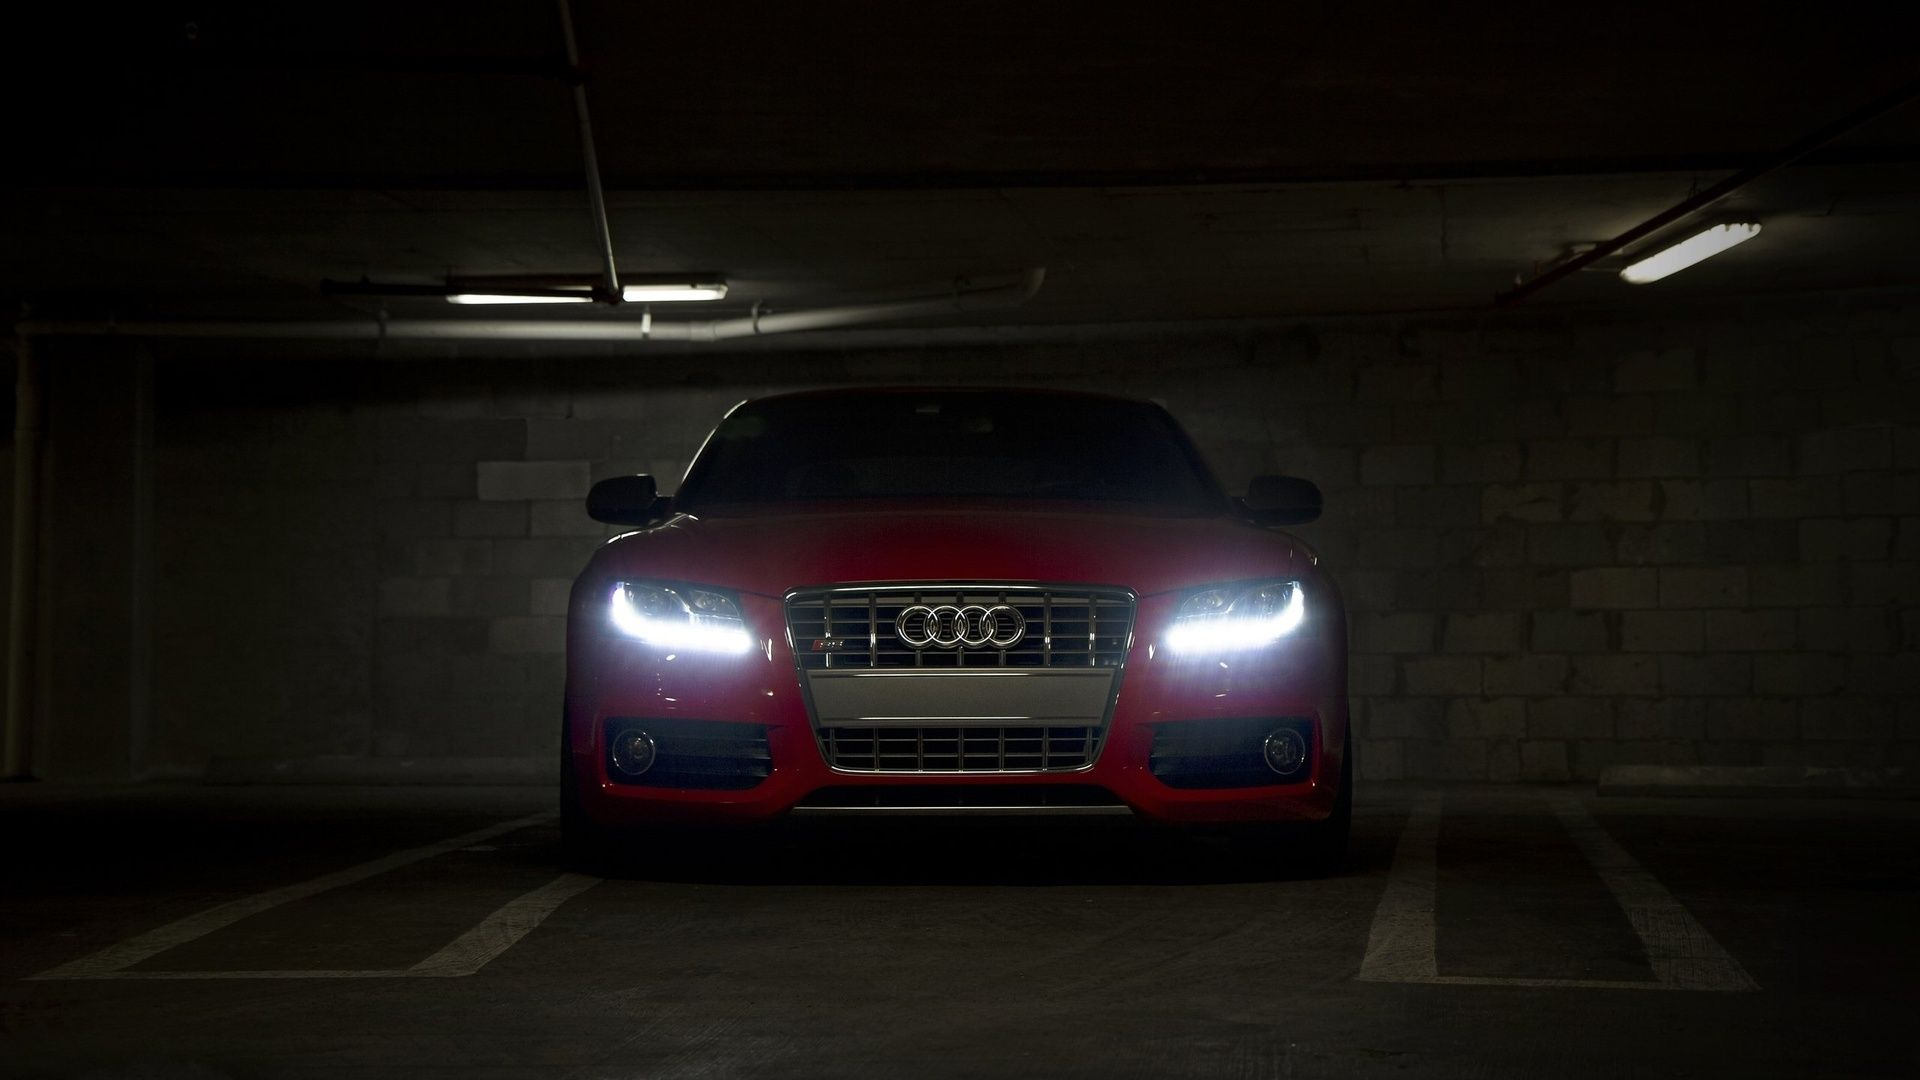 Hd Audi Car Wallpapers Free Download 1920?1080 Audi Car Images ...